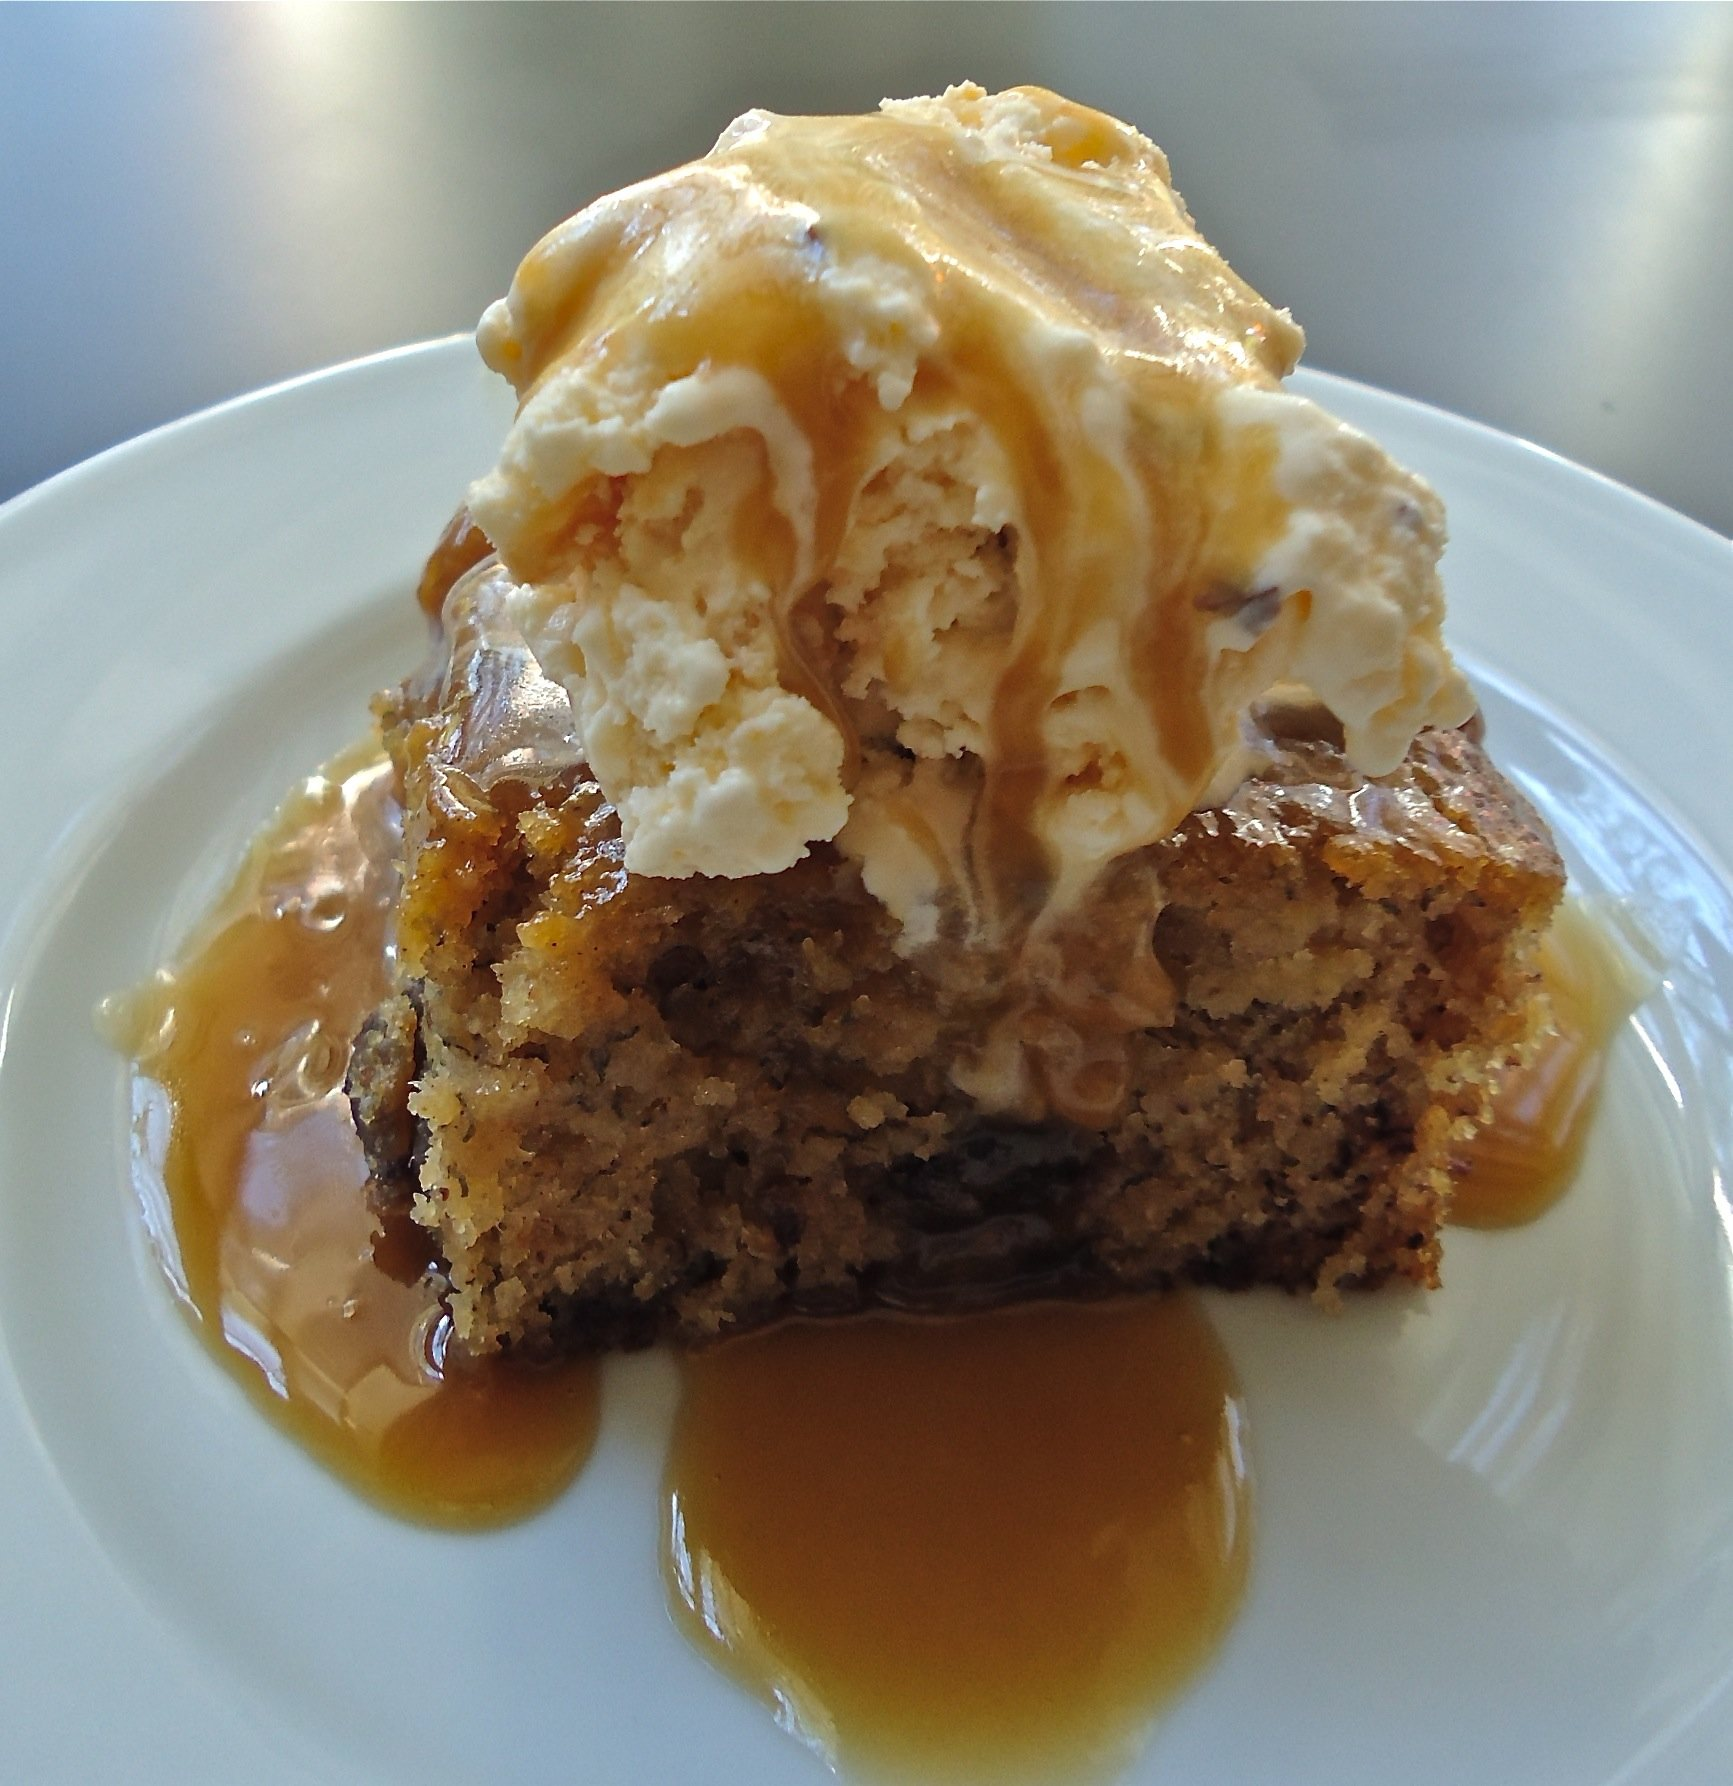 Another shot of the finished sticky toffee banana pudding. Yummy!